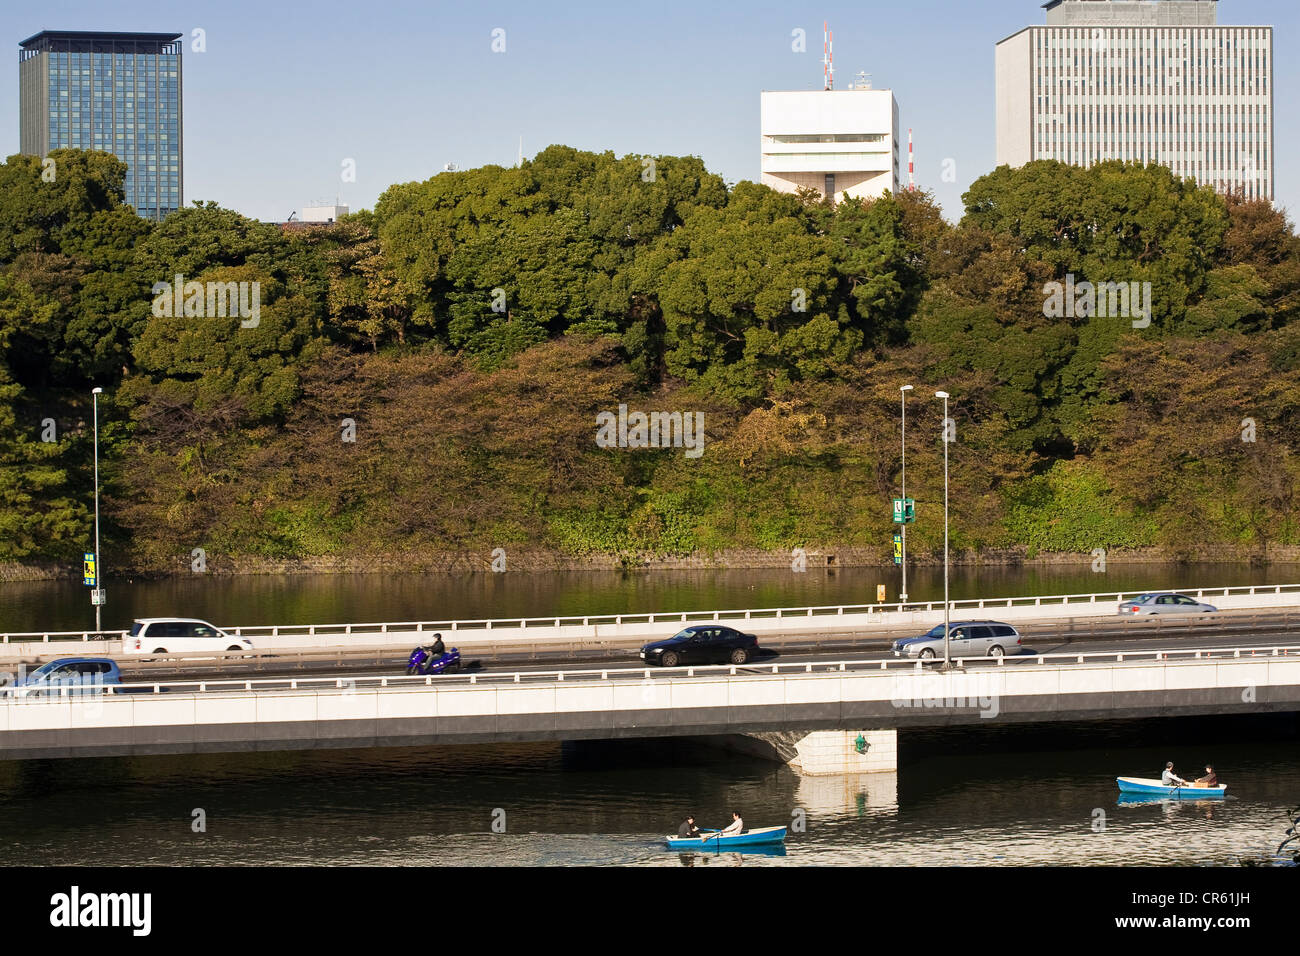 Japan, Honshu Island, Tokyo, Marunouchi, view from the East Garden of the Imperial Palace on the moats where is - Stock Image